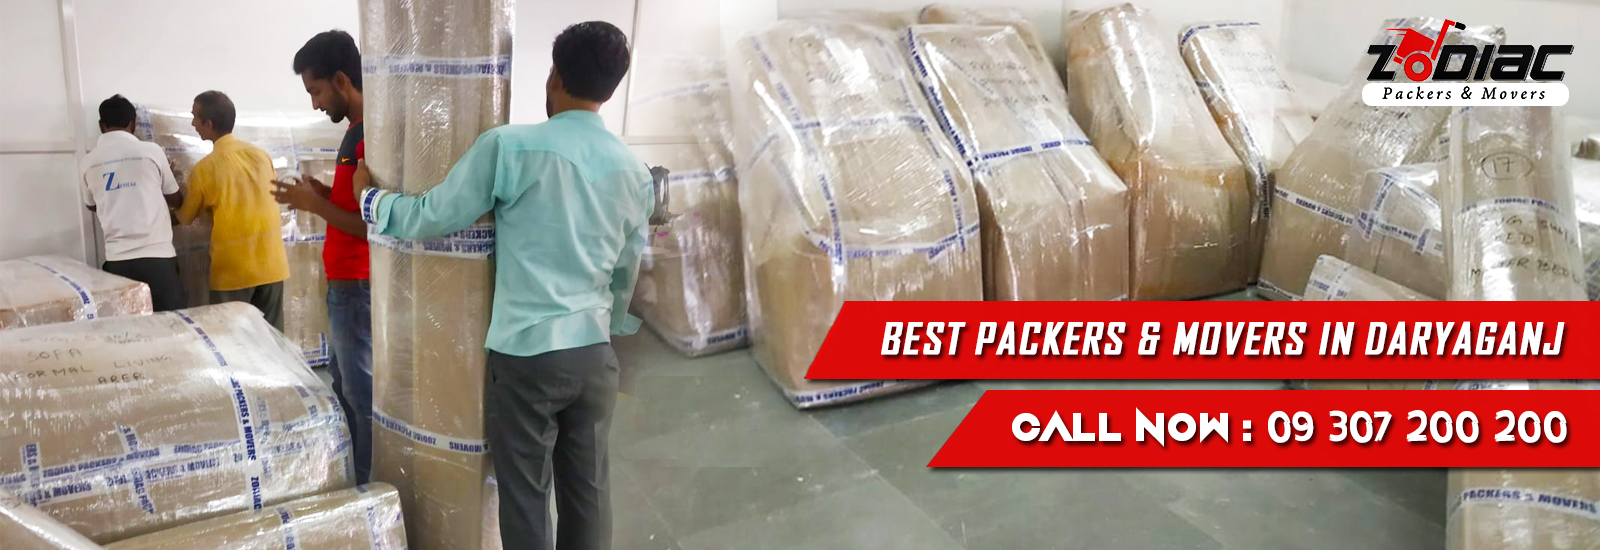 Packers and Movers in Daryaganj